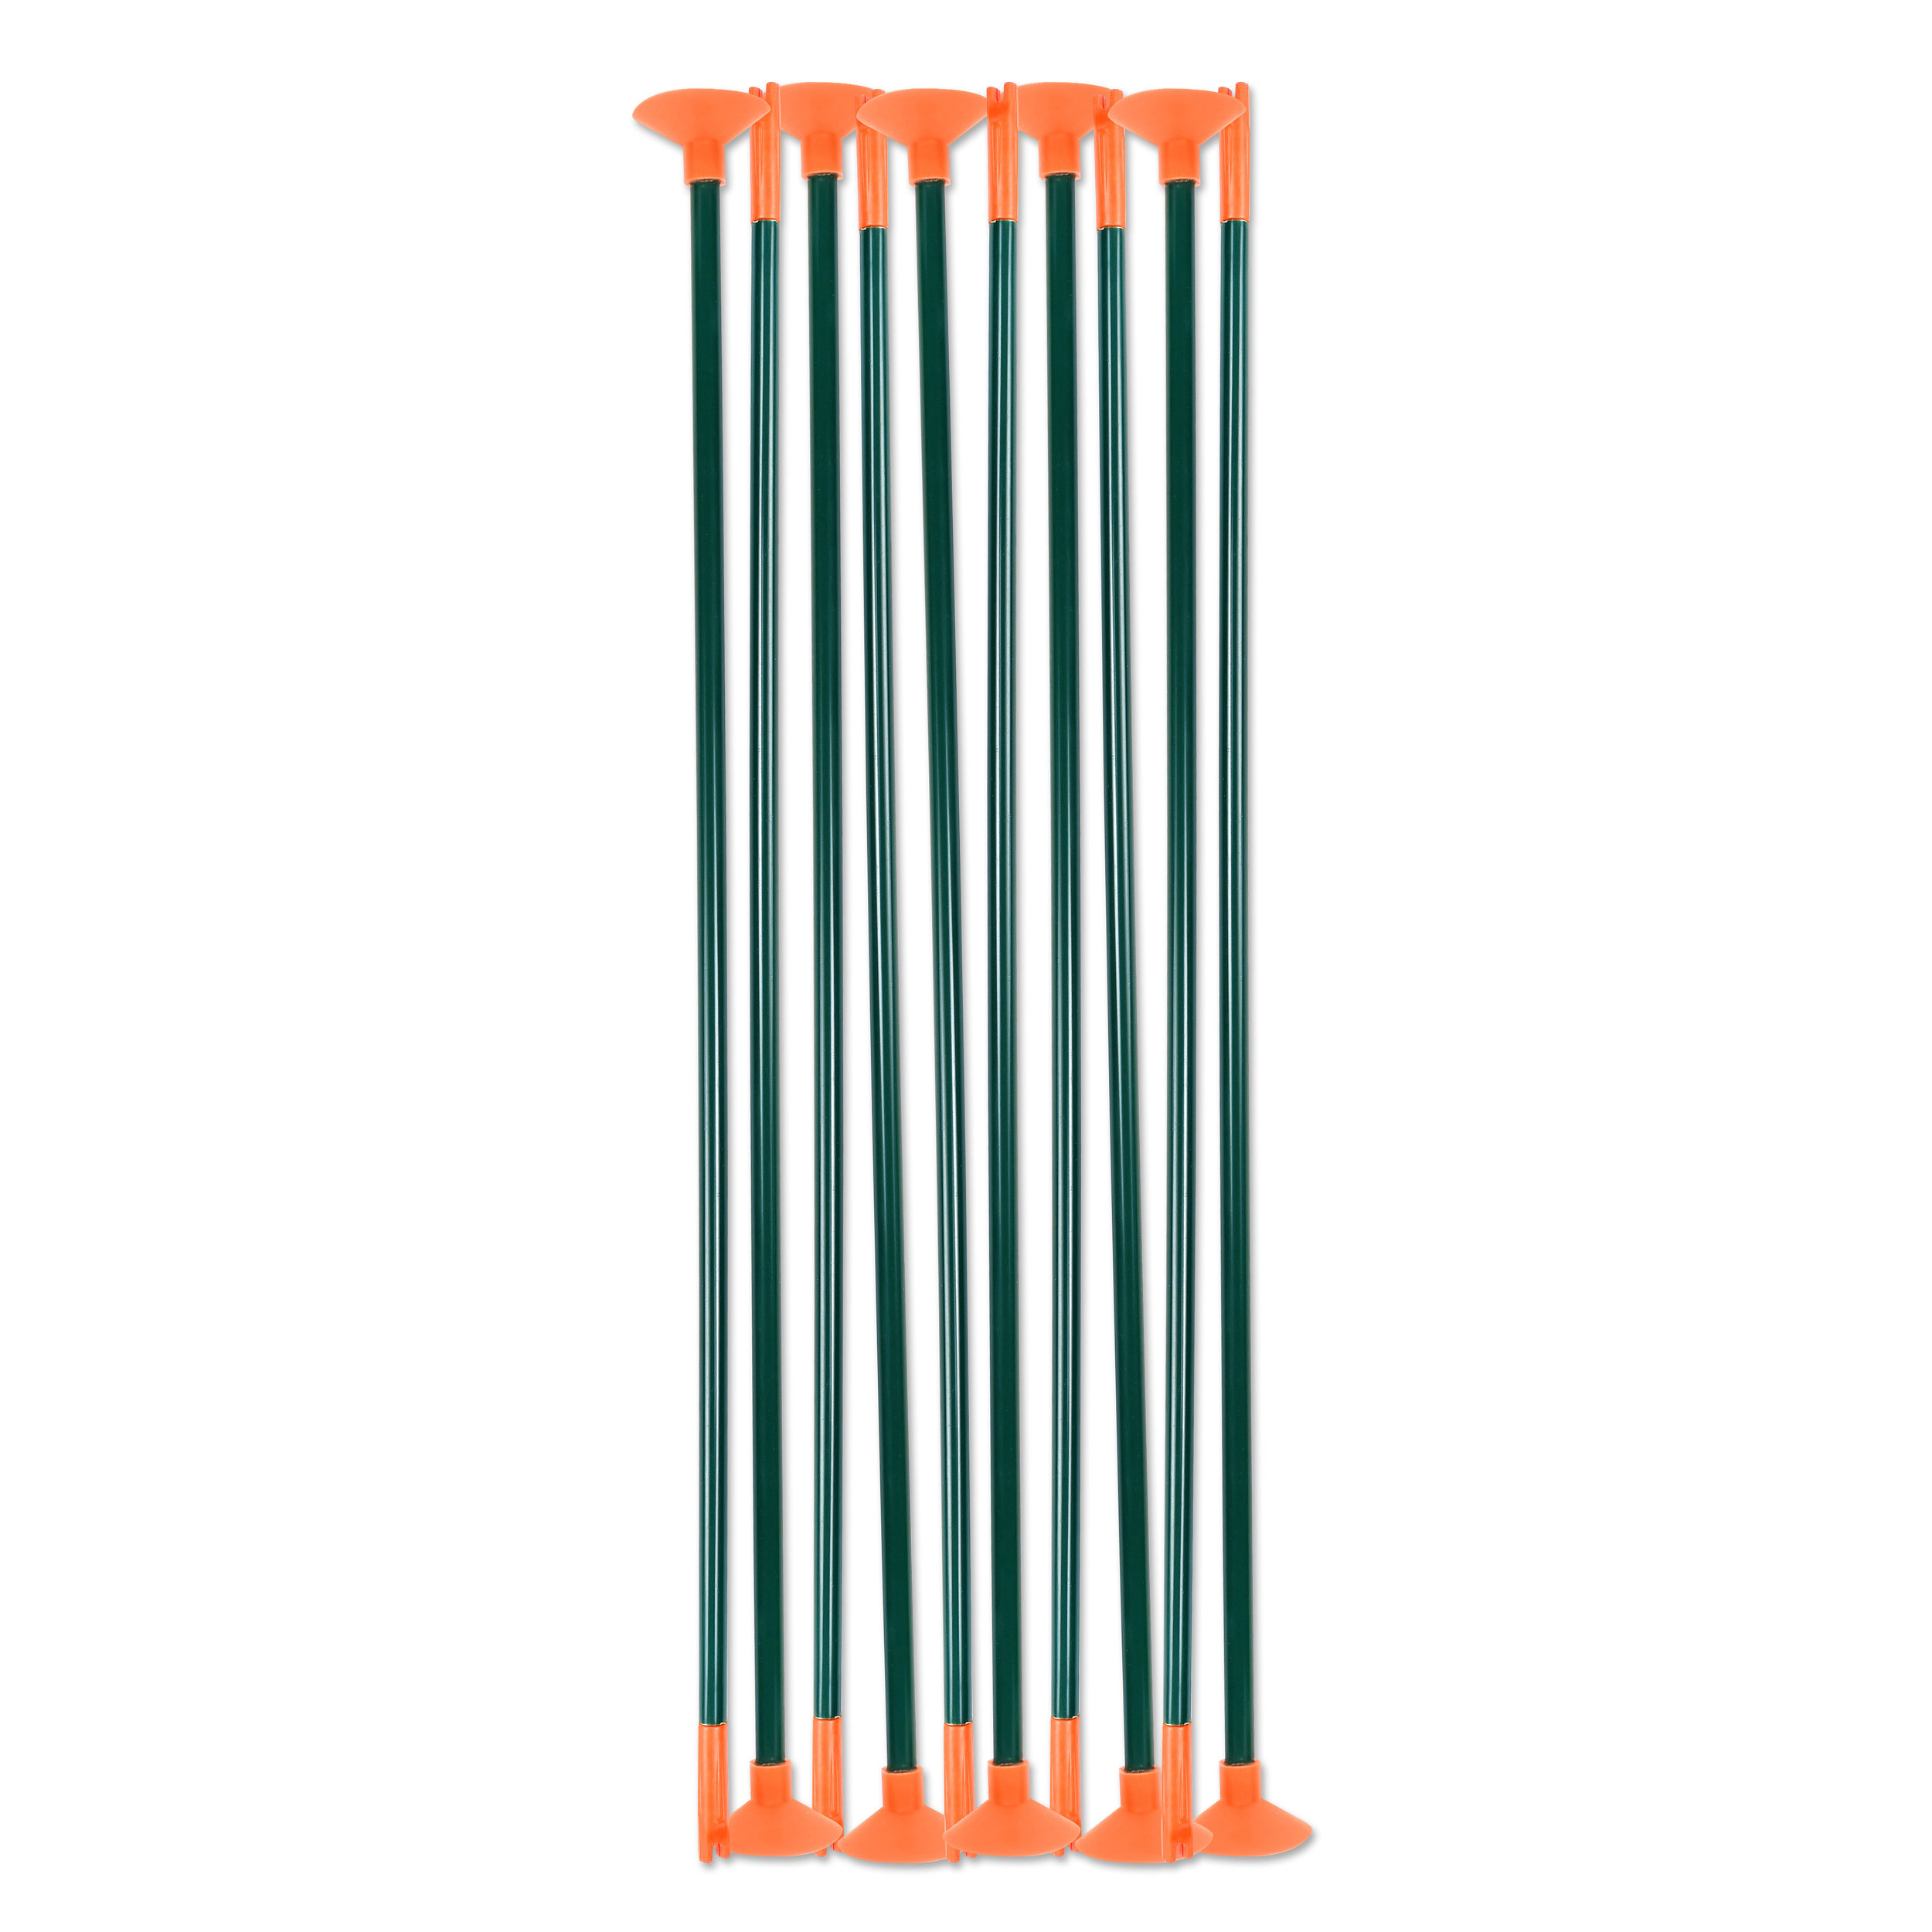 Maxx Action Arrows Refill - 10 Pack